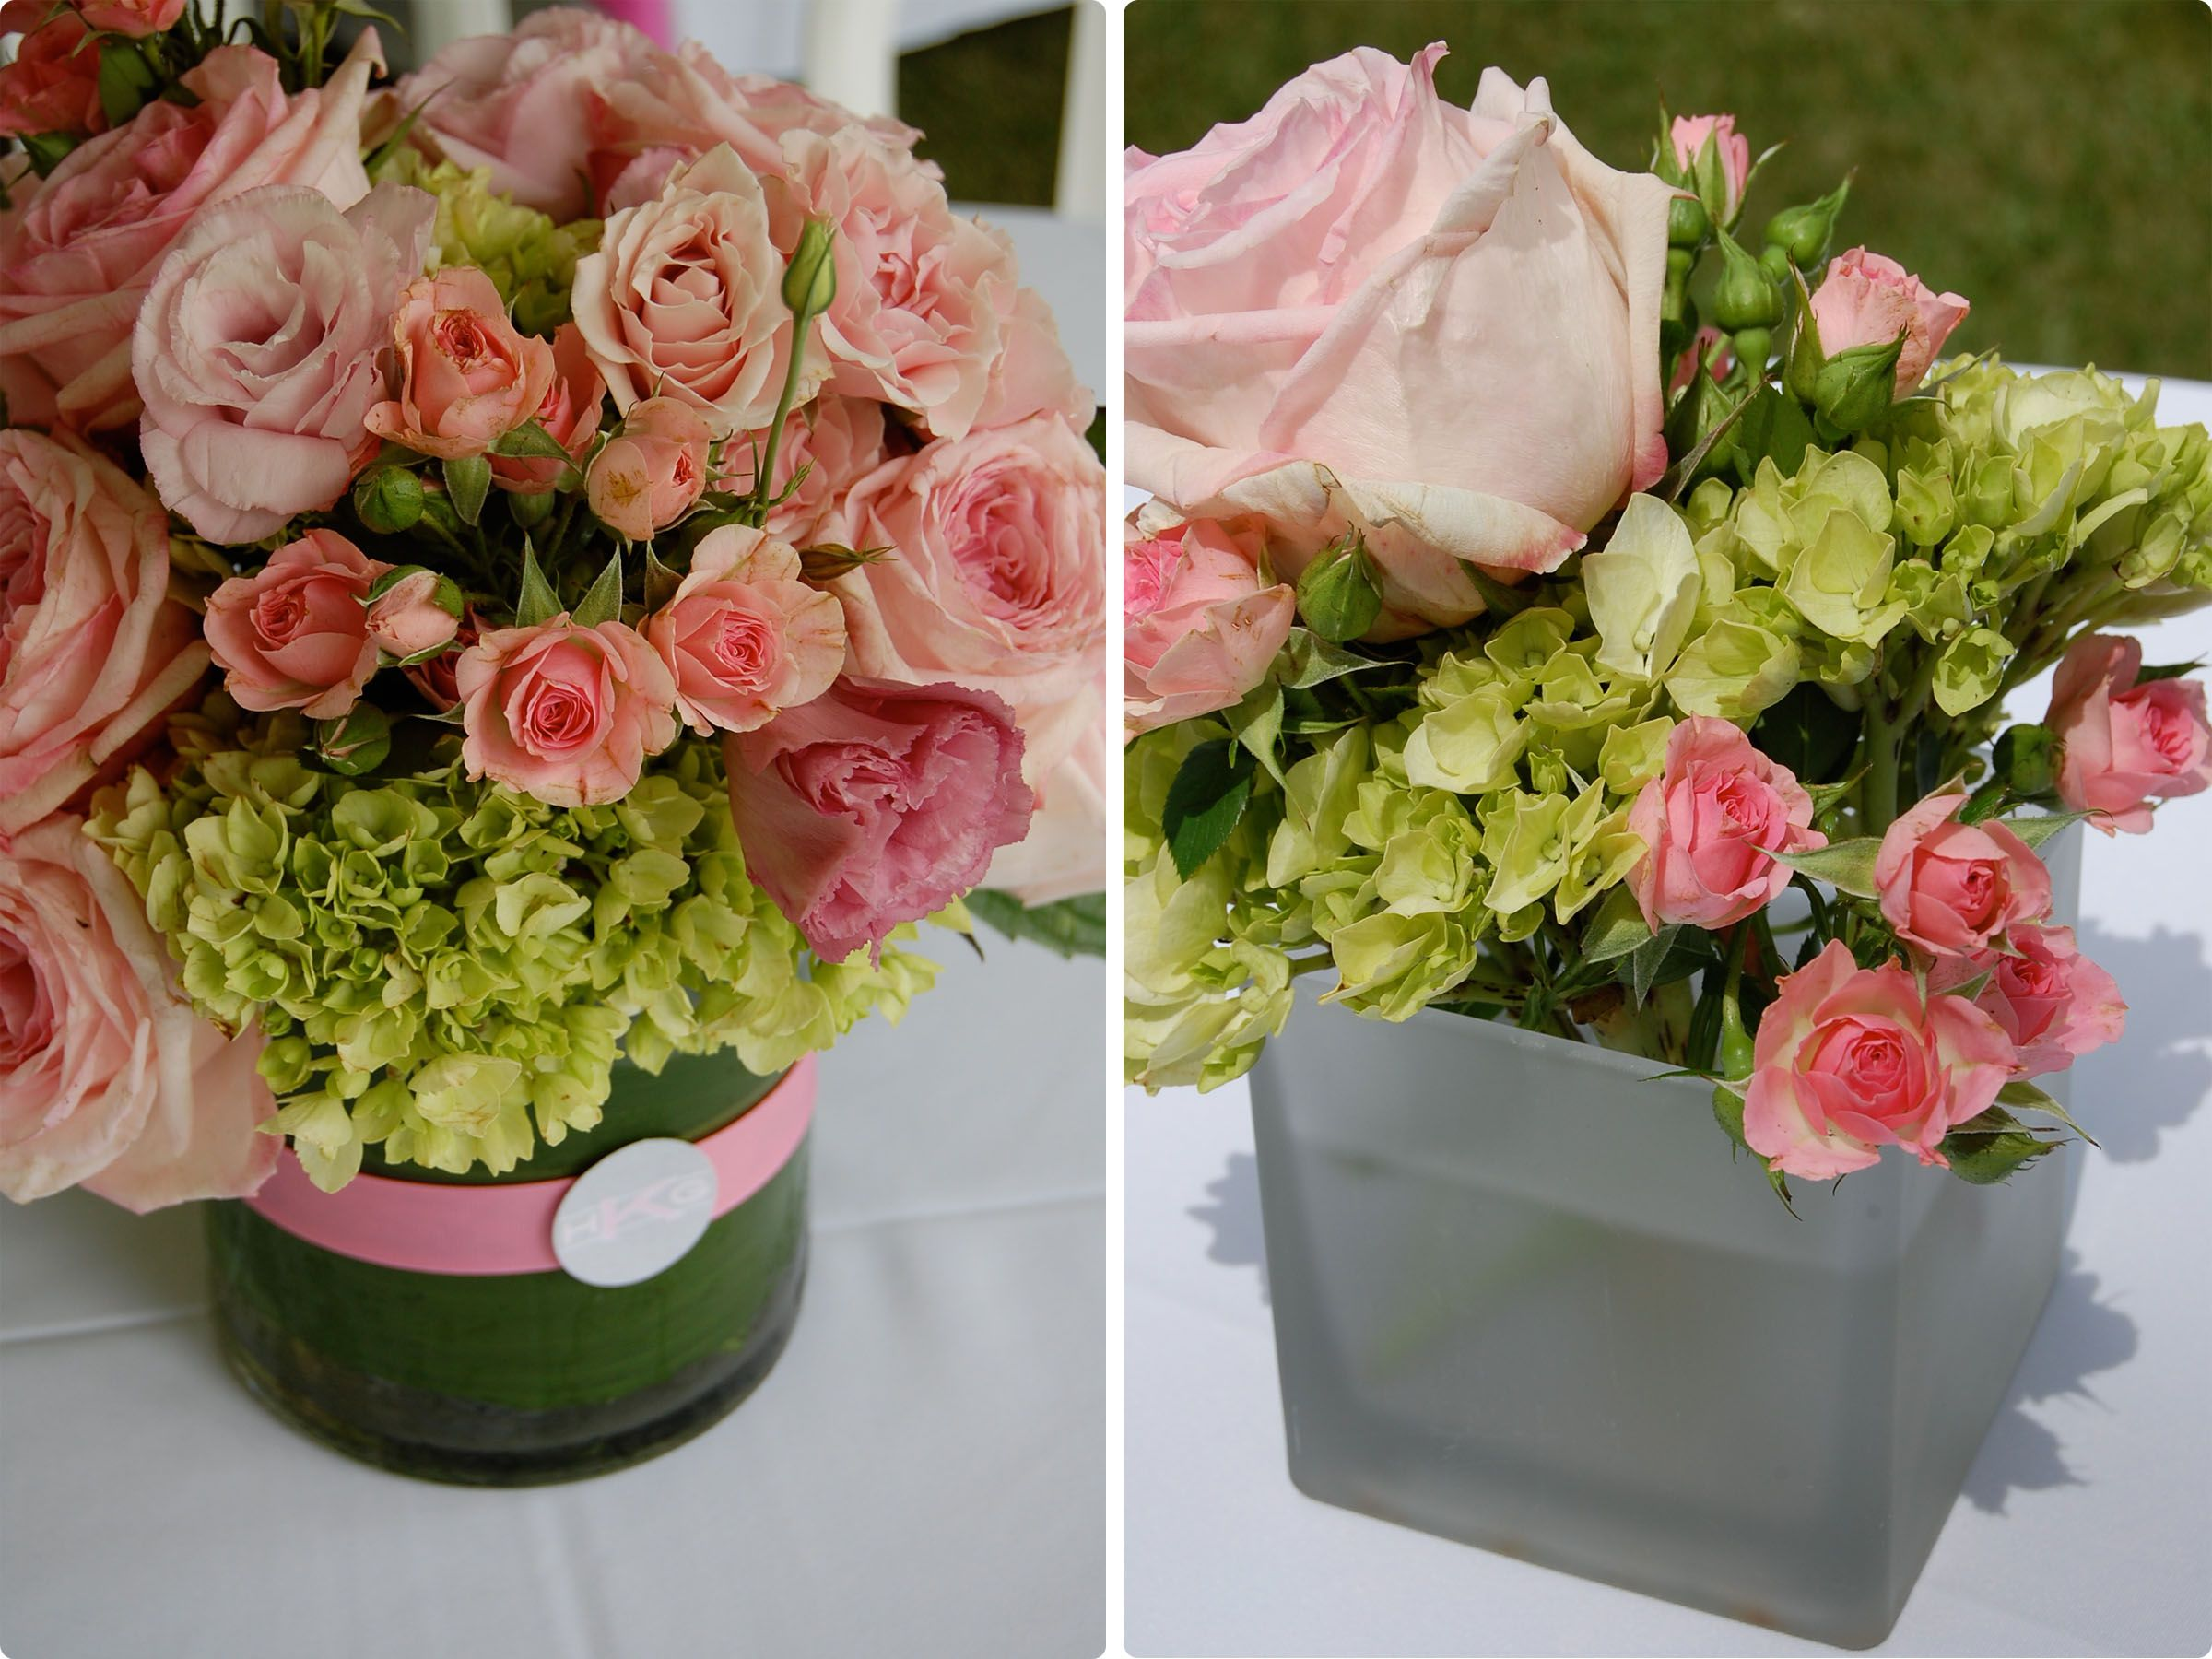 Baby shower flower centerpieces summer floral centerpieces with baby shower flower centerpieces summer floral centerpieces with green hydrangea and pink roses sat reviewsmspy